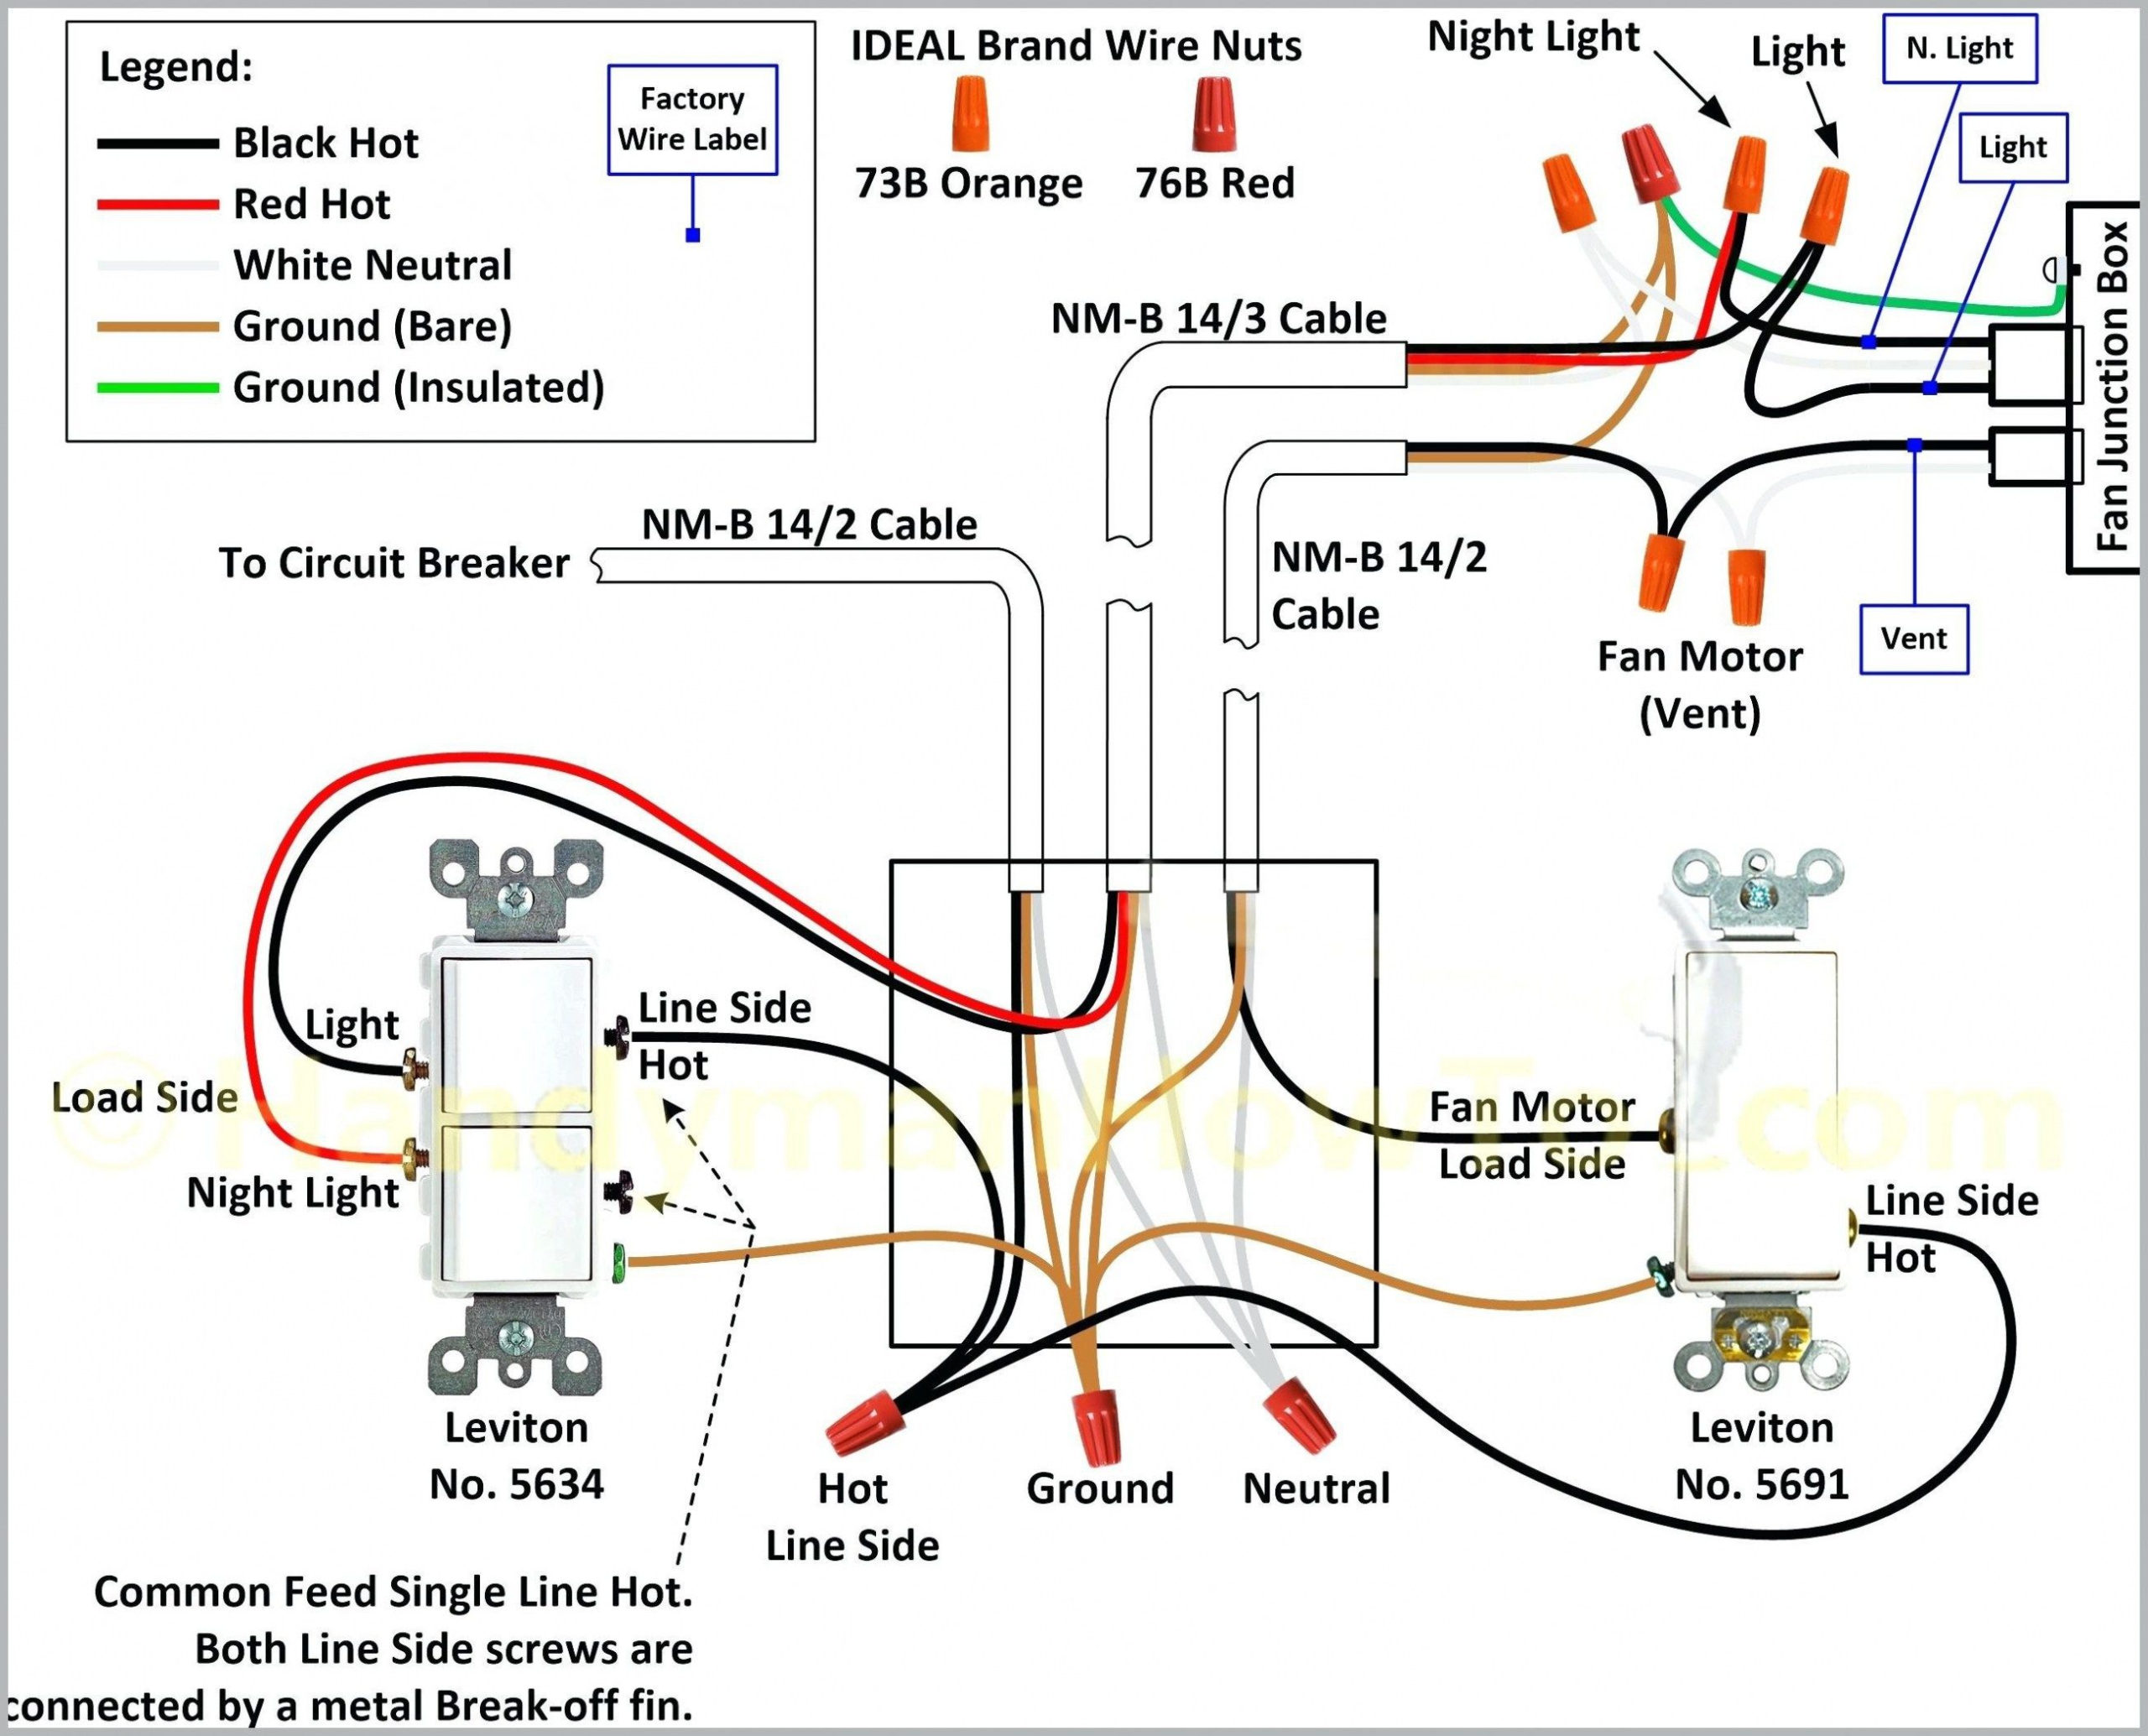 Wiring Diagram For Ceiling Fan Switch - Bookingritzcarlton | Wiring Diagram For Ceiling Fan